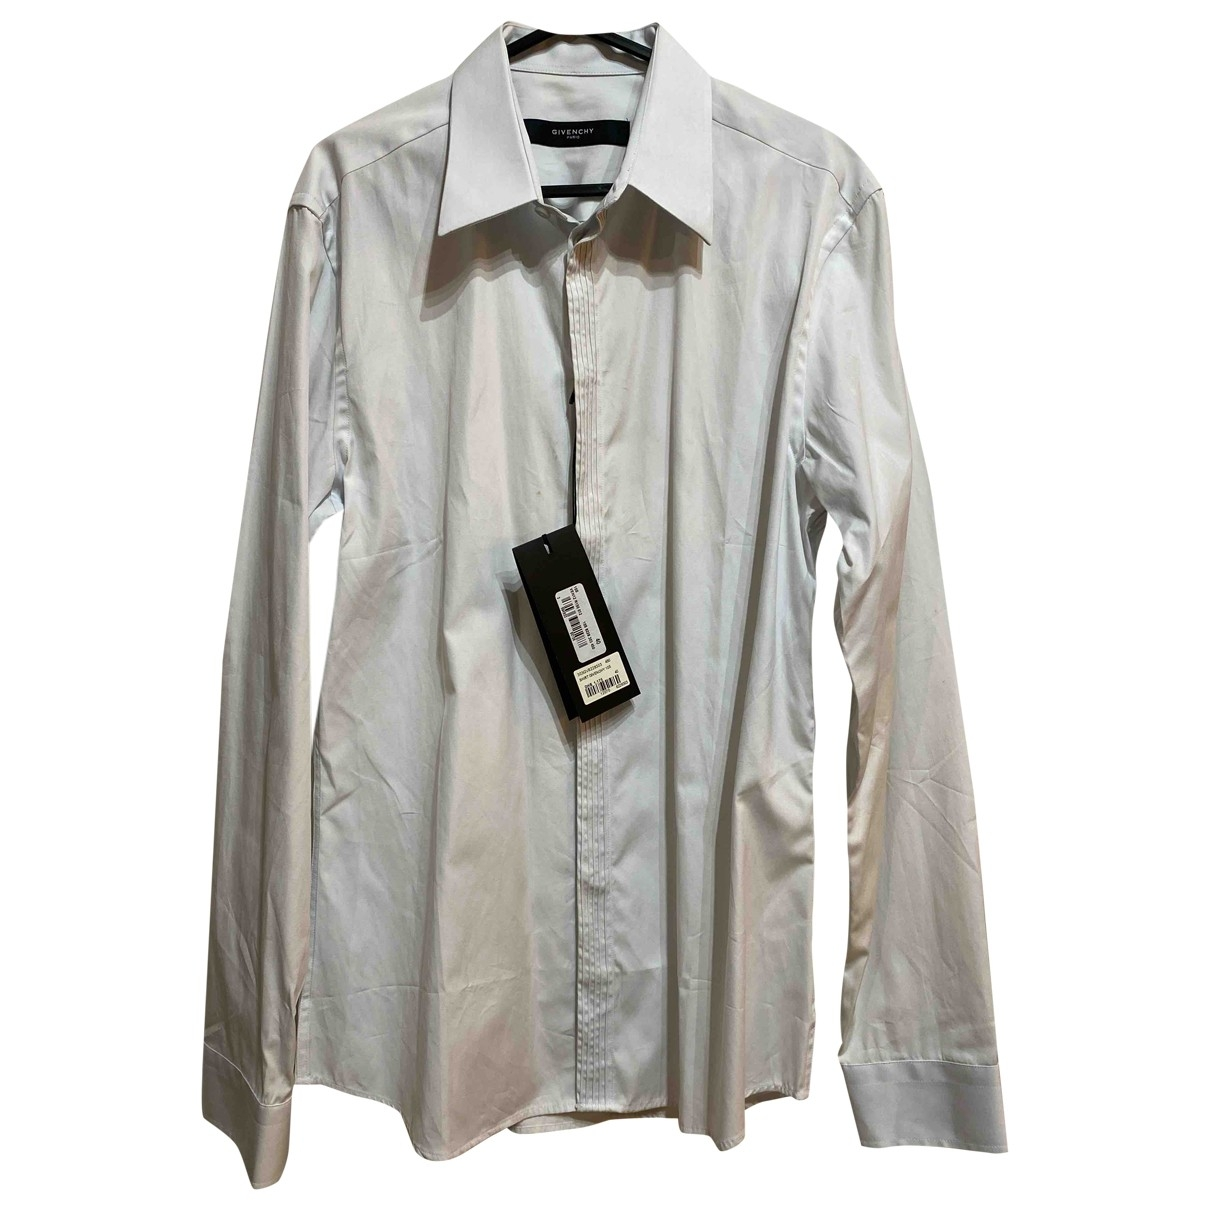 Givenchy \N Blue Cotton Shirts for Men 40 EU (tour de cou / collar)